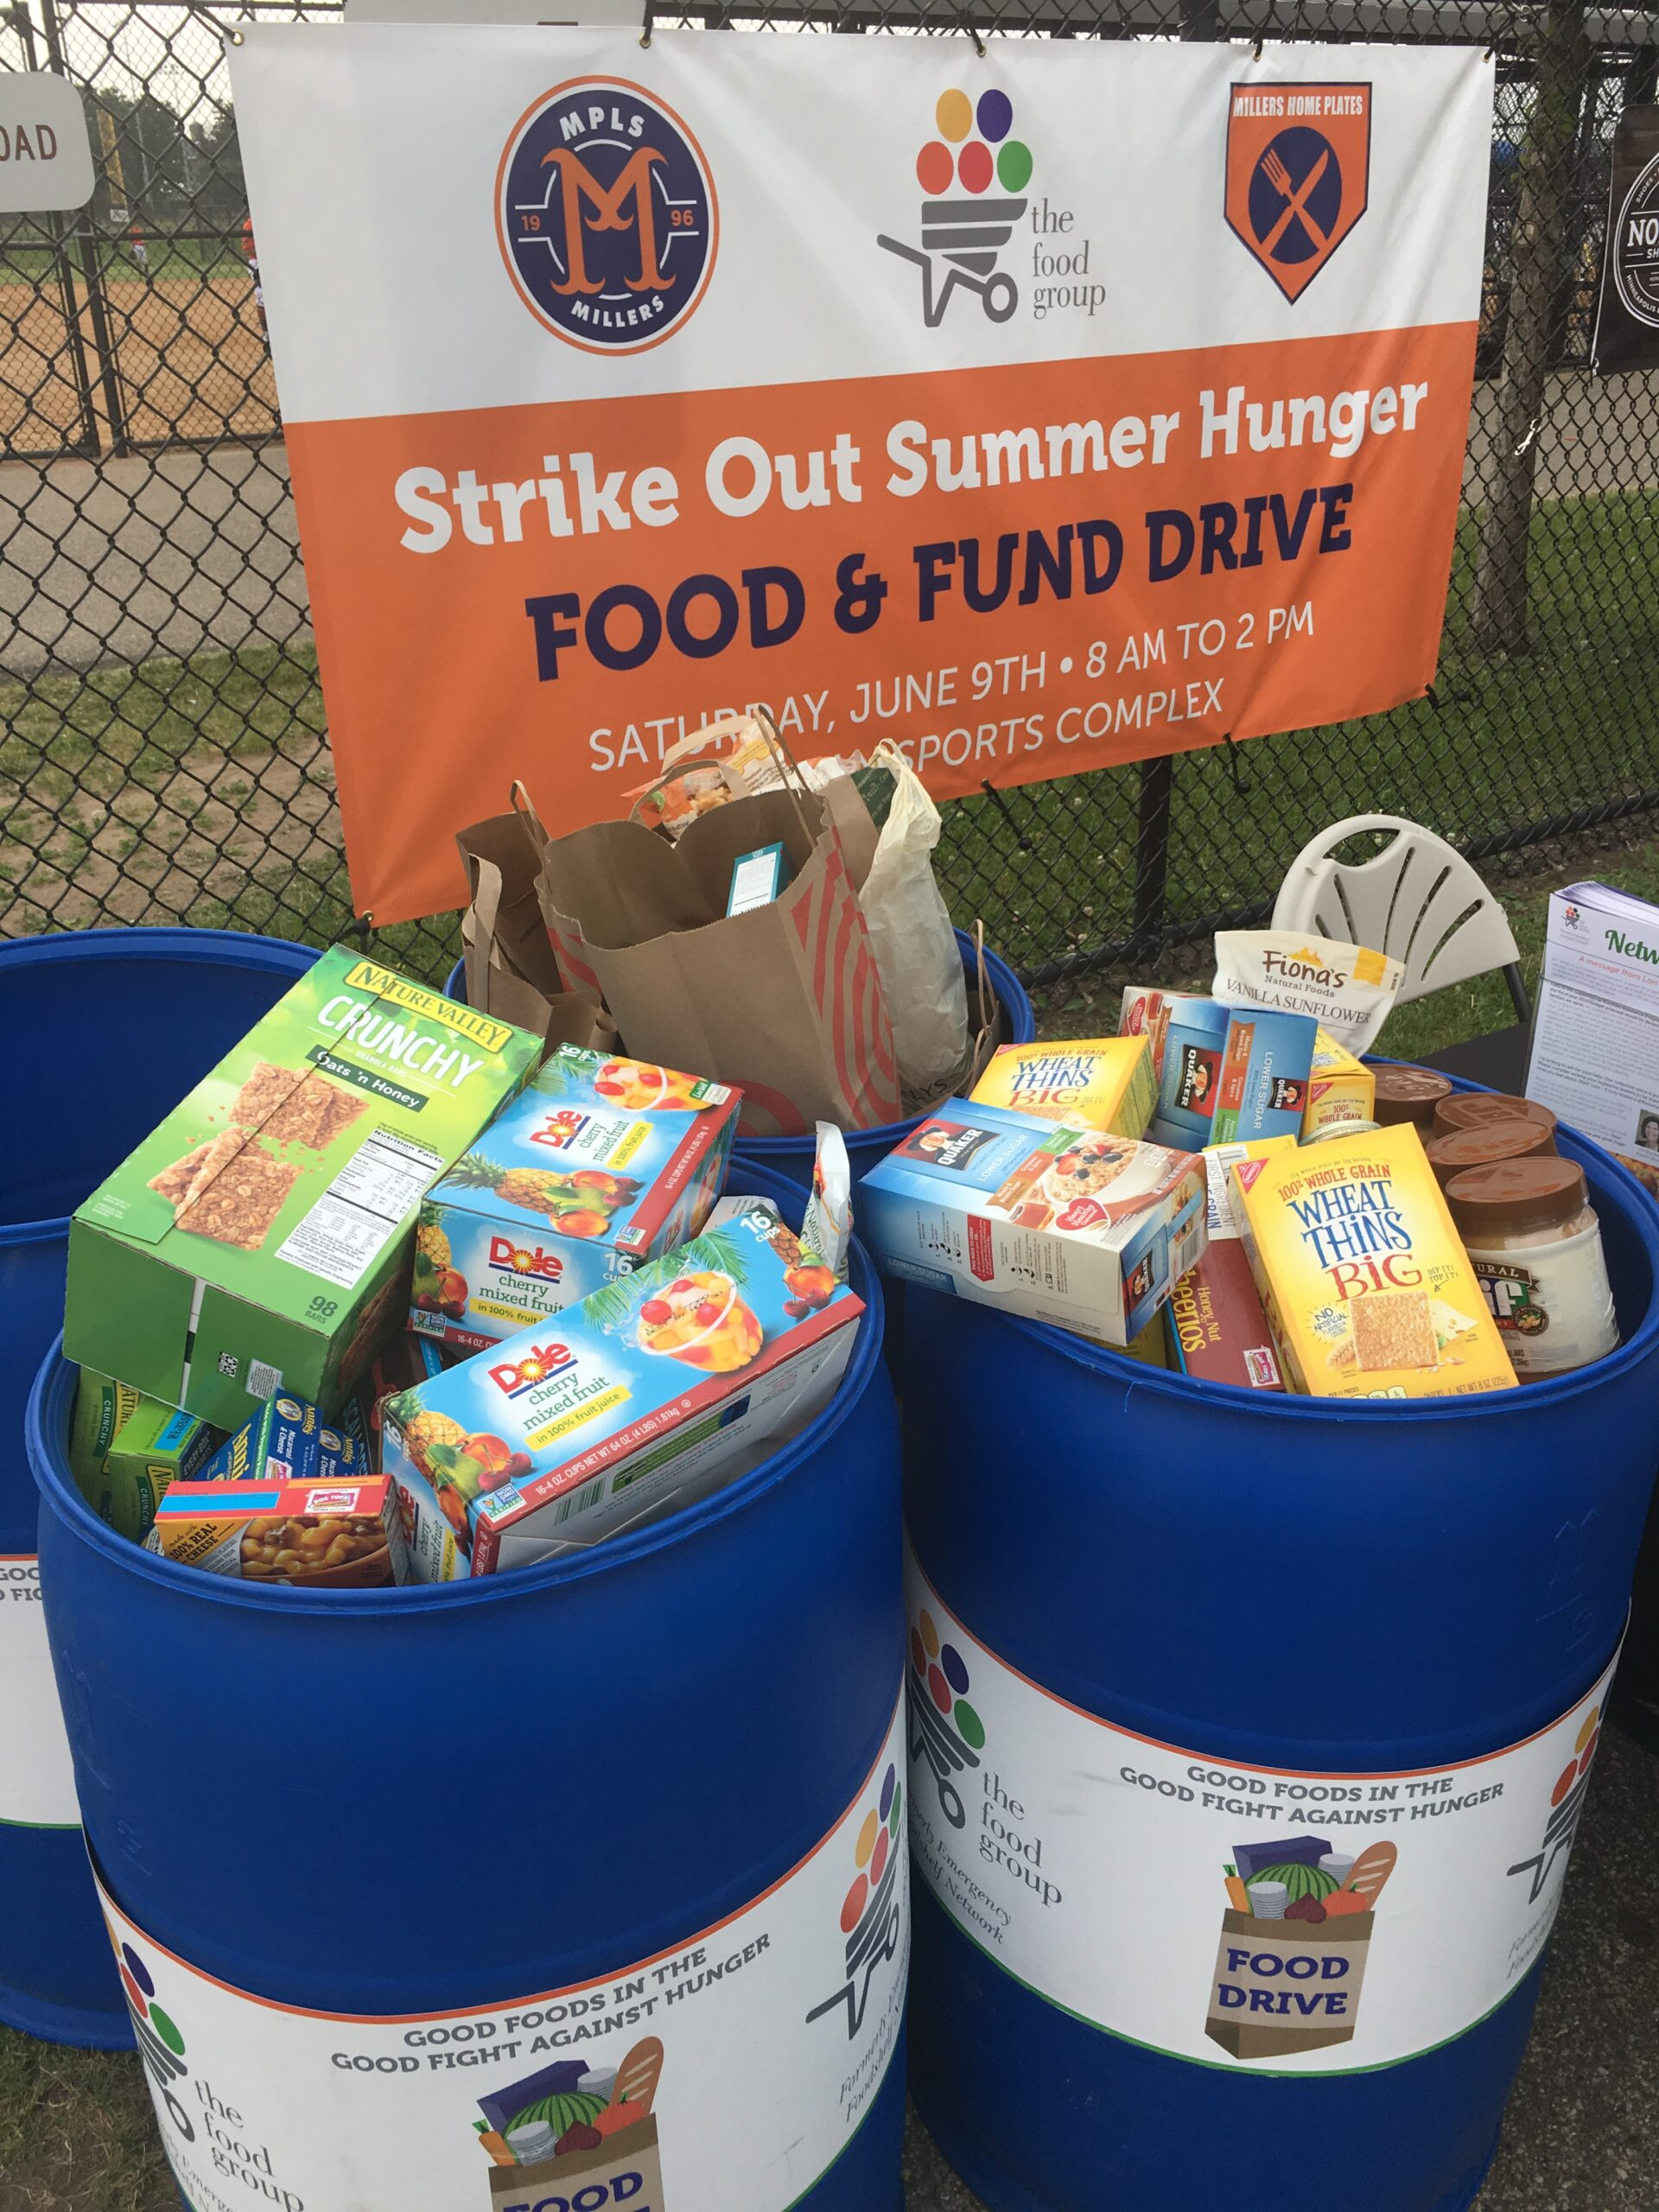 Blue collection bins at an outdoor food drive event filled with food donations